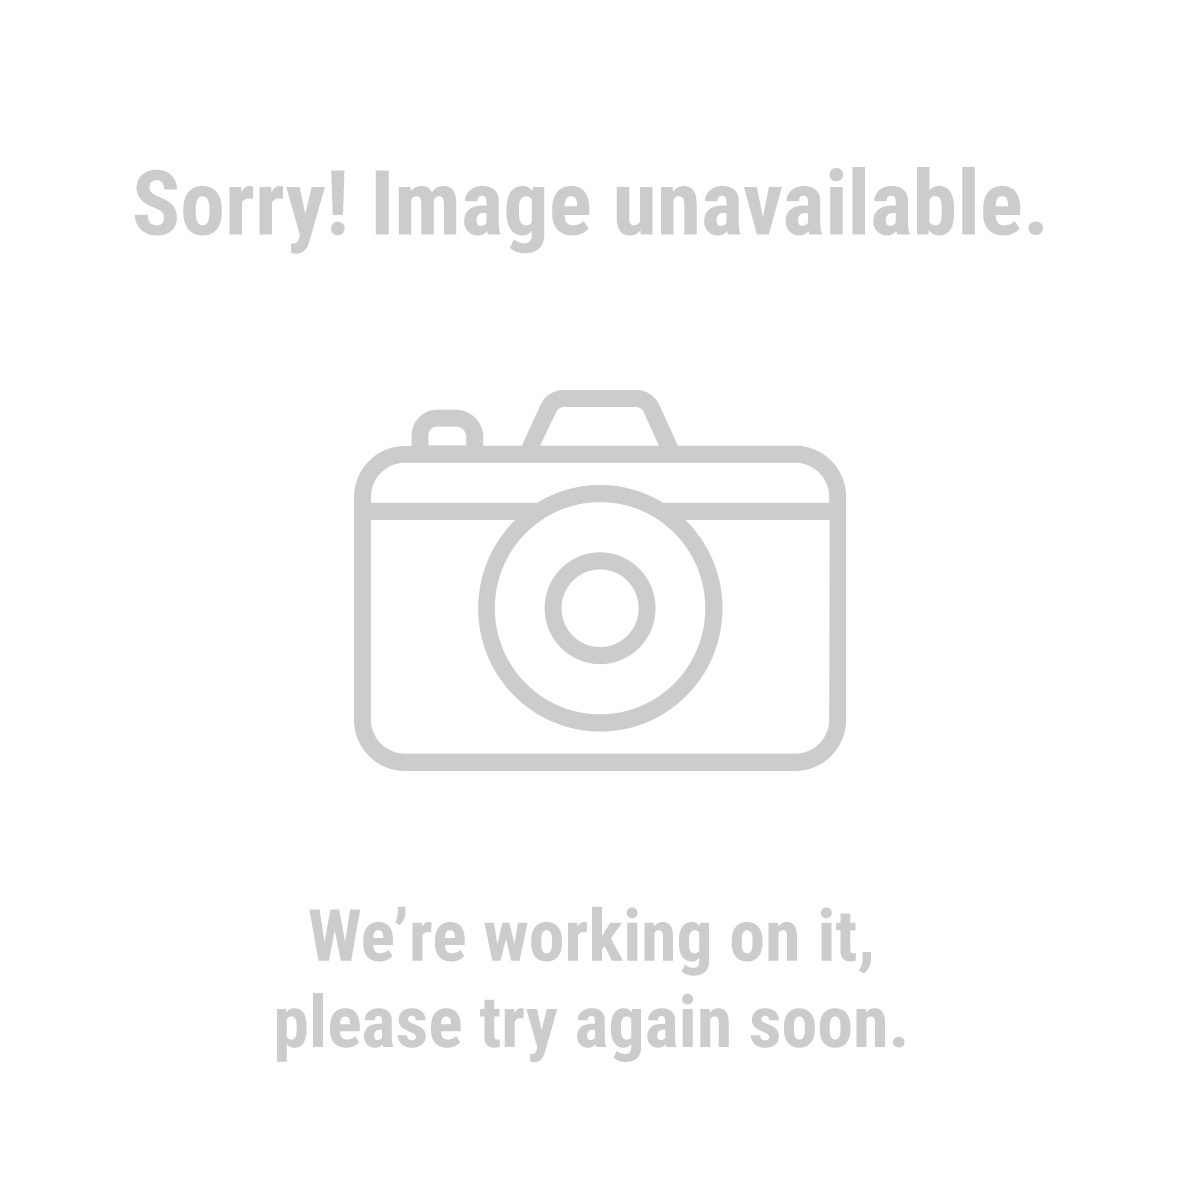 Pittsburgh® 90764 32 Piece Screwdriver Set